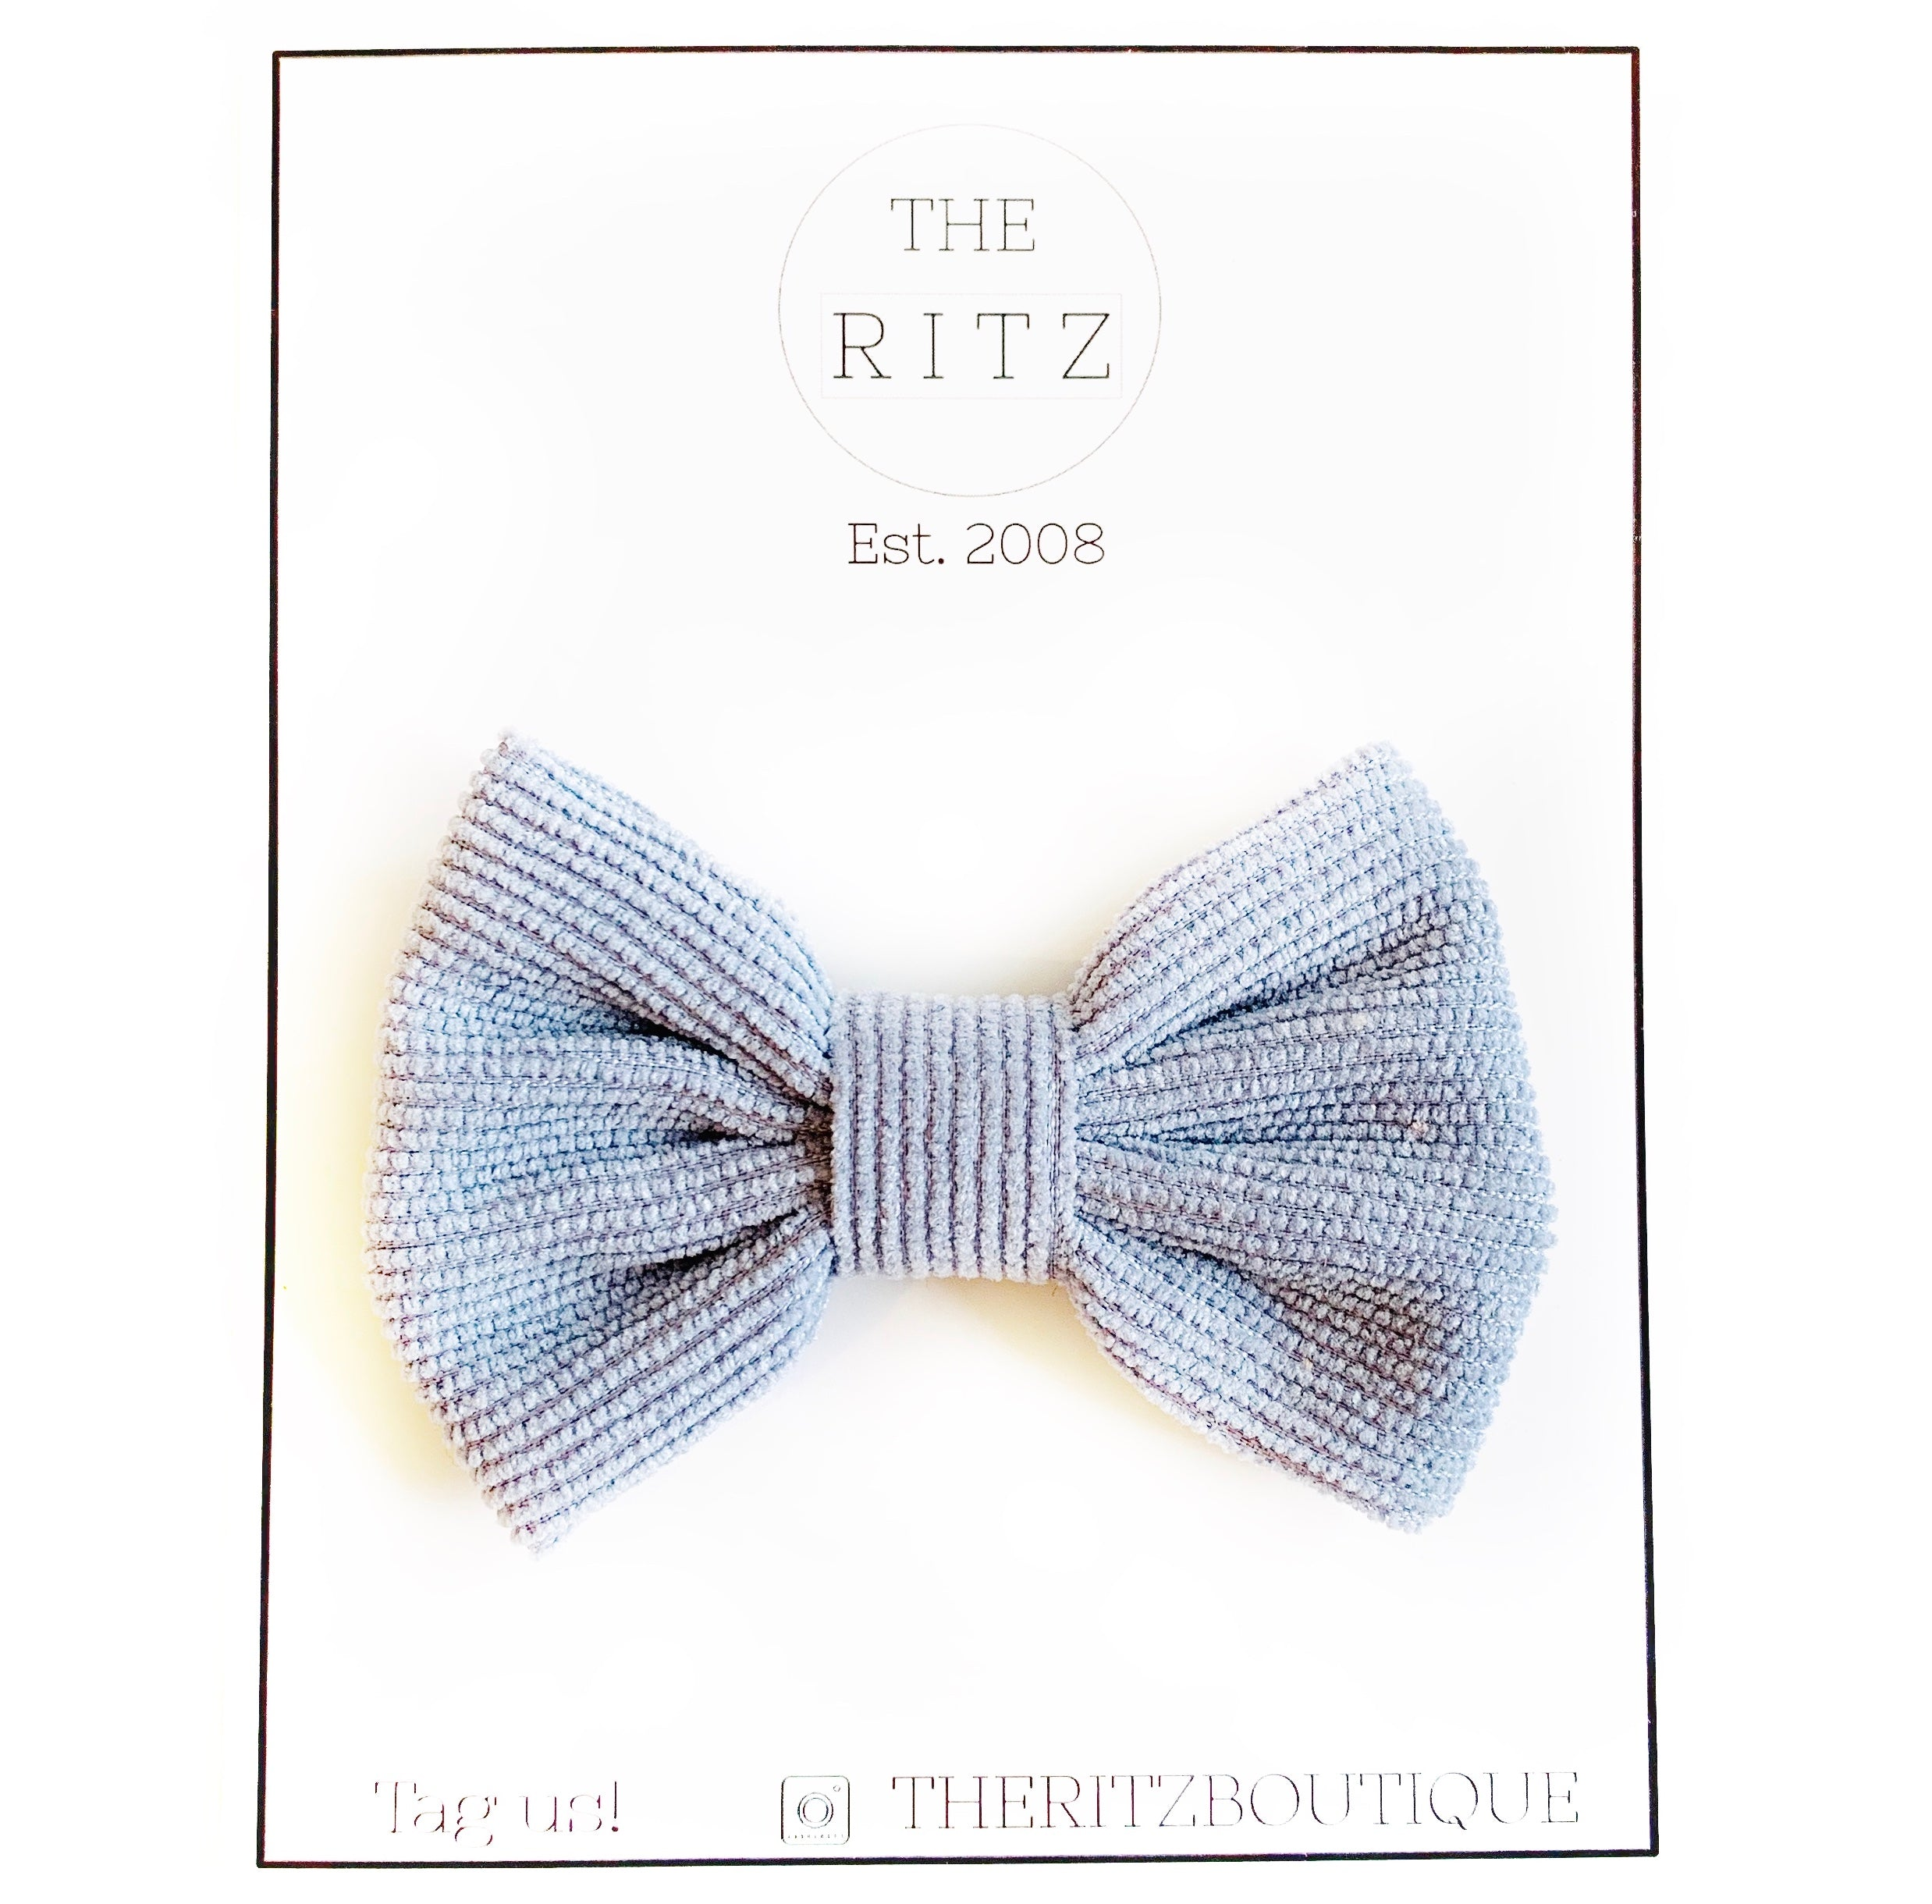 Blue Willow Corduroy Bow-tie Midi Bow